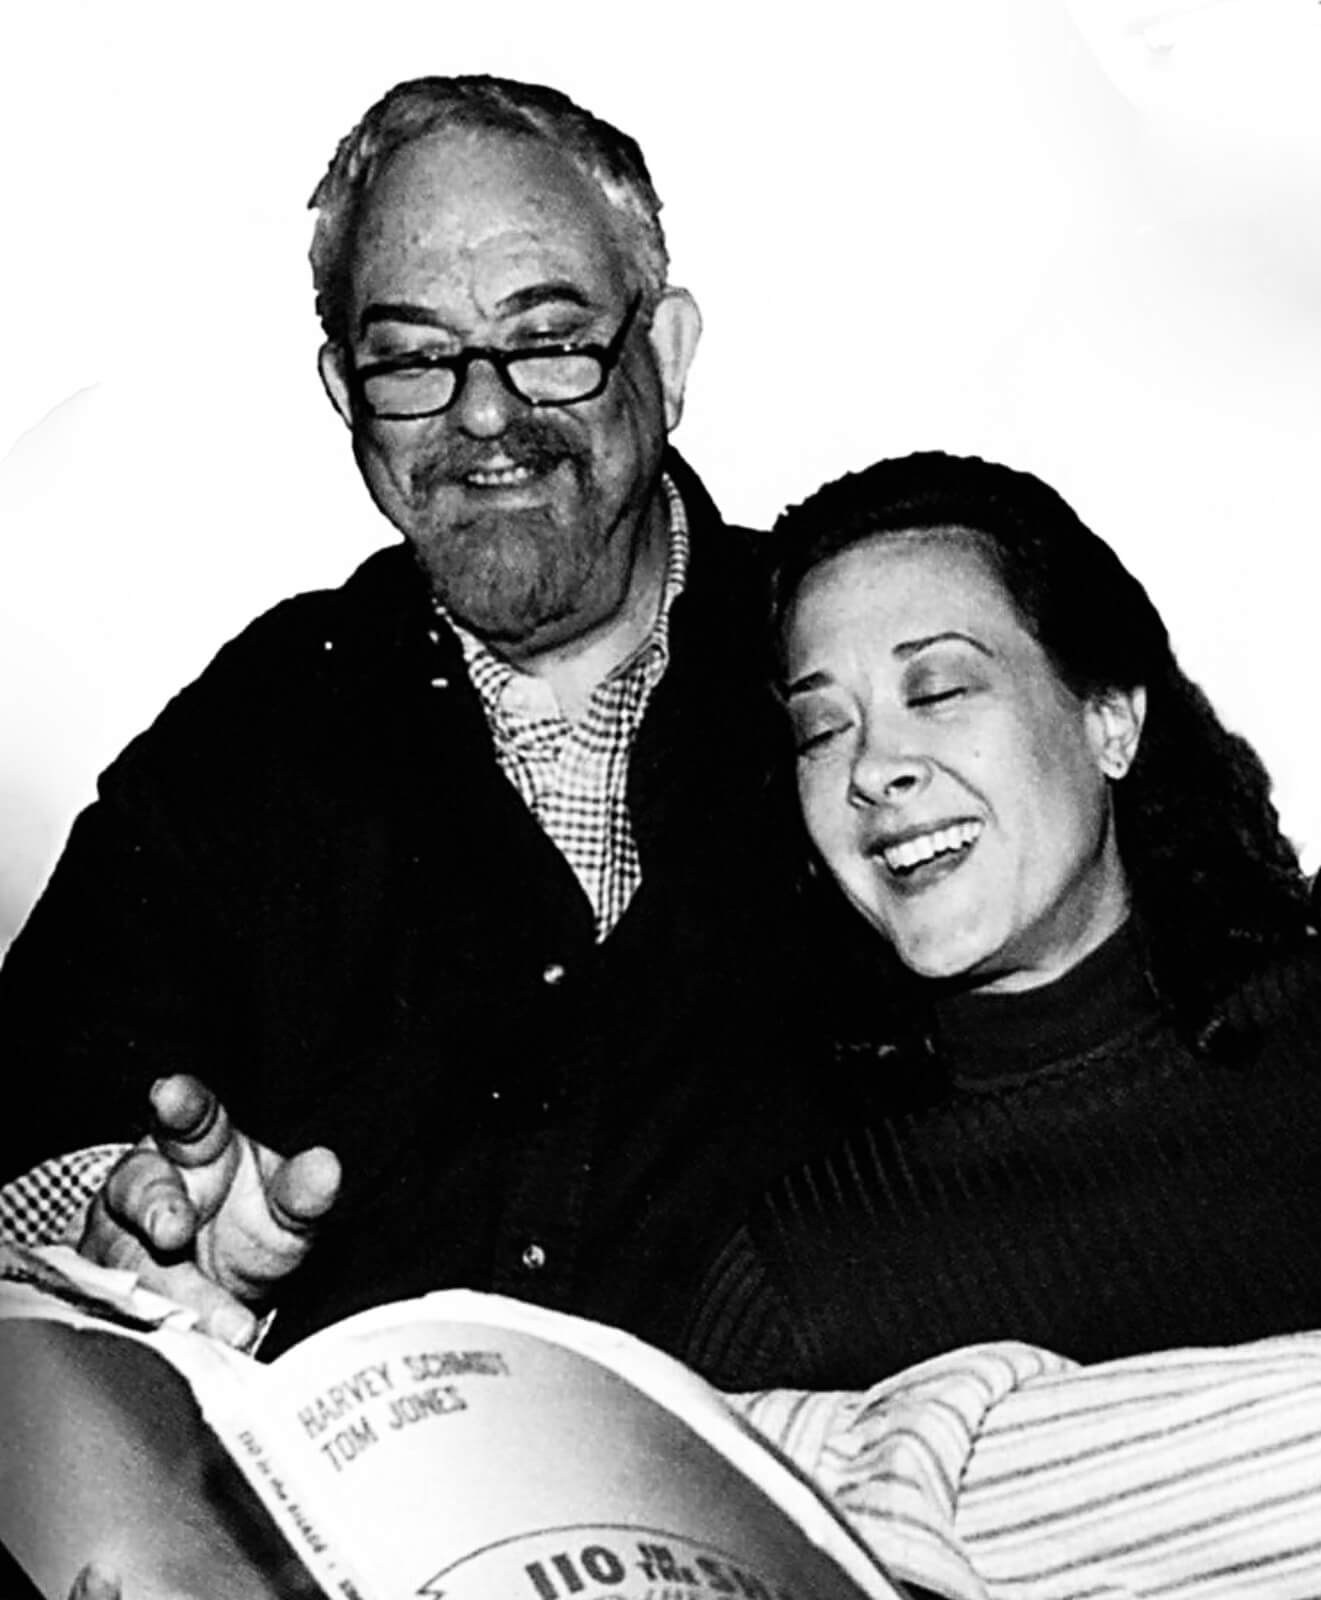 Black and white photo of Harvey Schmidt and Karen Ziemba in rehearsal. Both standing over sheet music, while Karen is singing and Harvey looks on smiling.